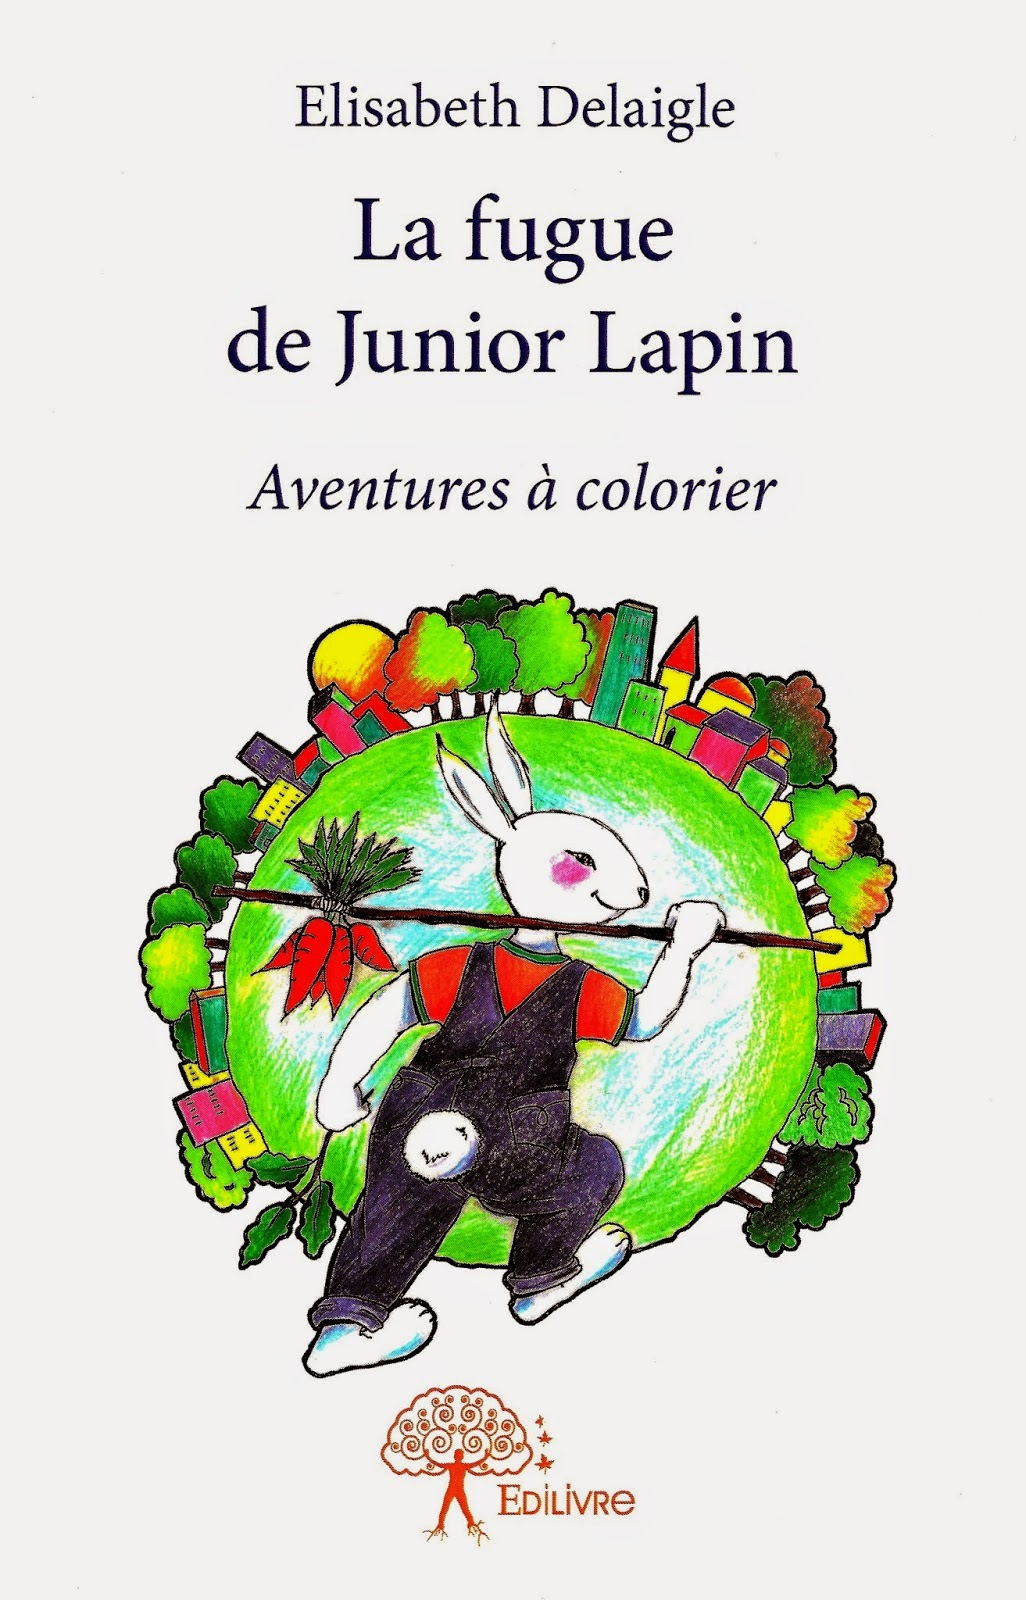 La Fugue de Junior Lapin / Elisabeth Delaigle